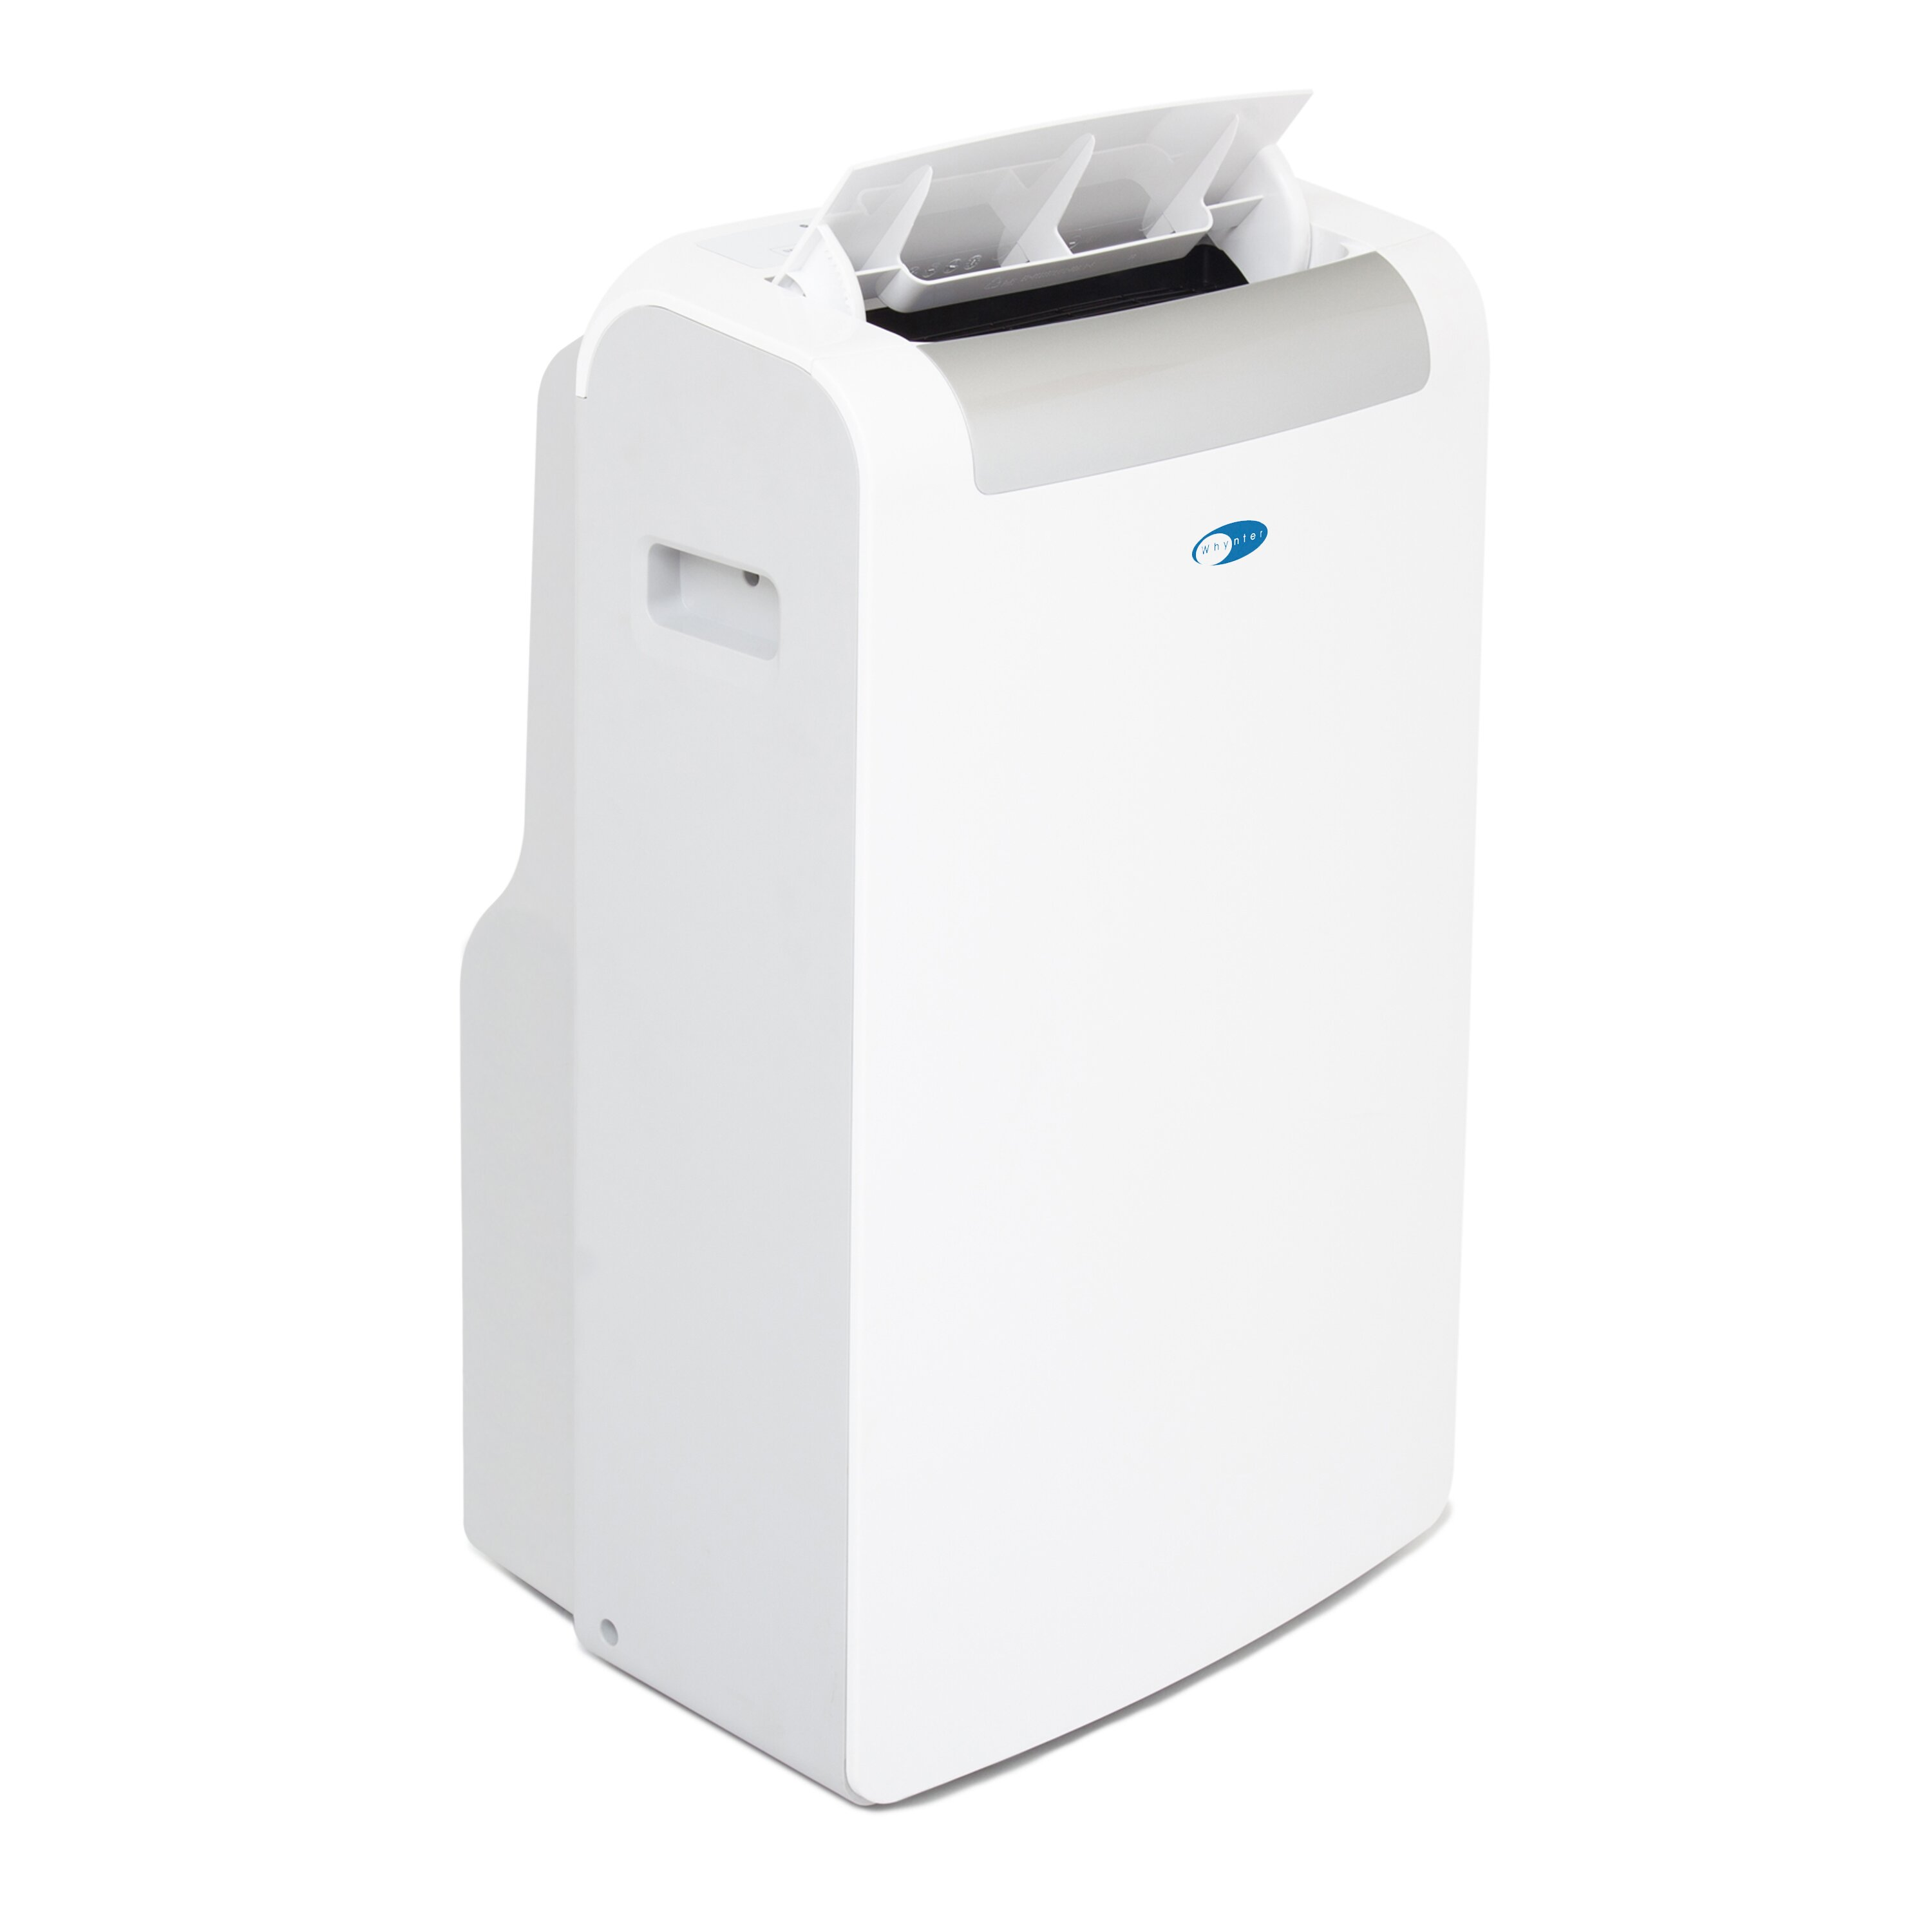 Whynter 14000 BTU Portable Air Conditioner and Heater & Reviews  #0068A9